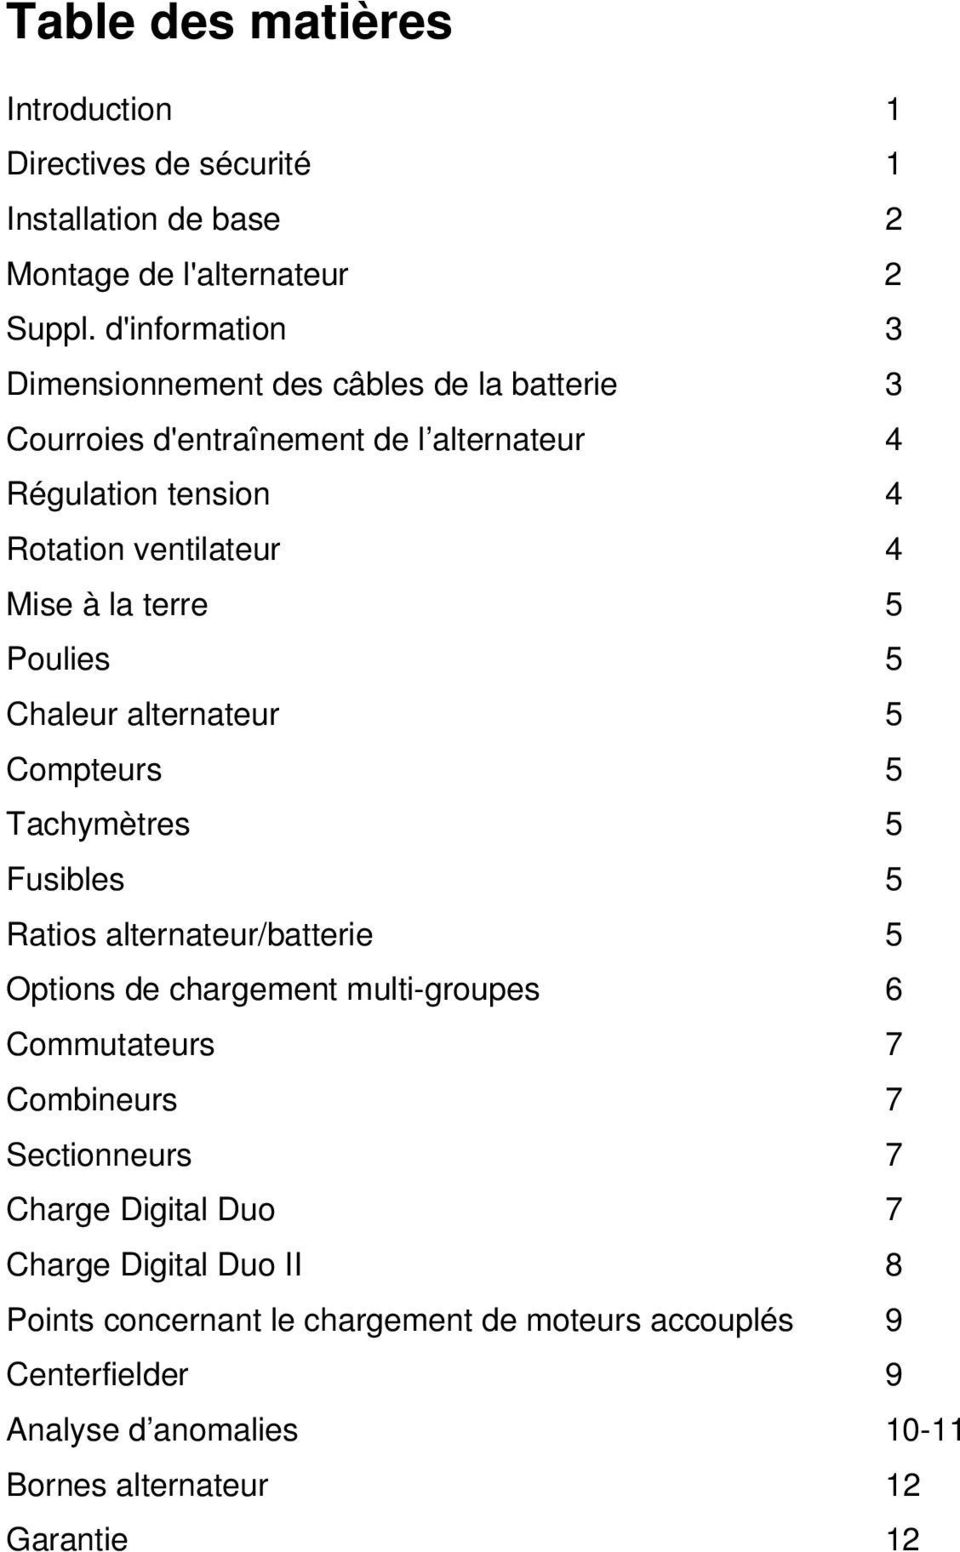 terre 5 Poulies 5 Chaleur alternateur 5 Compteurs 5 Tachymètres 5 Fusibles 5 Ratios alternateur/batterie 5 Options de chargement multi-groupes 6 Commutateurs 7